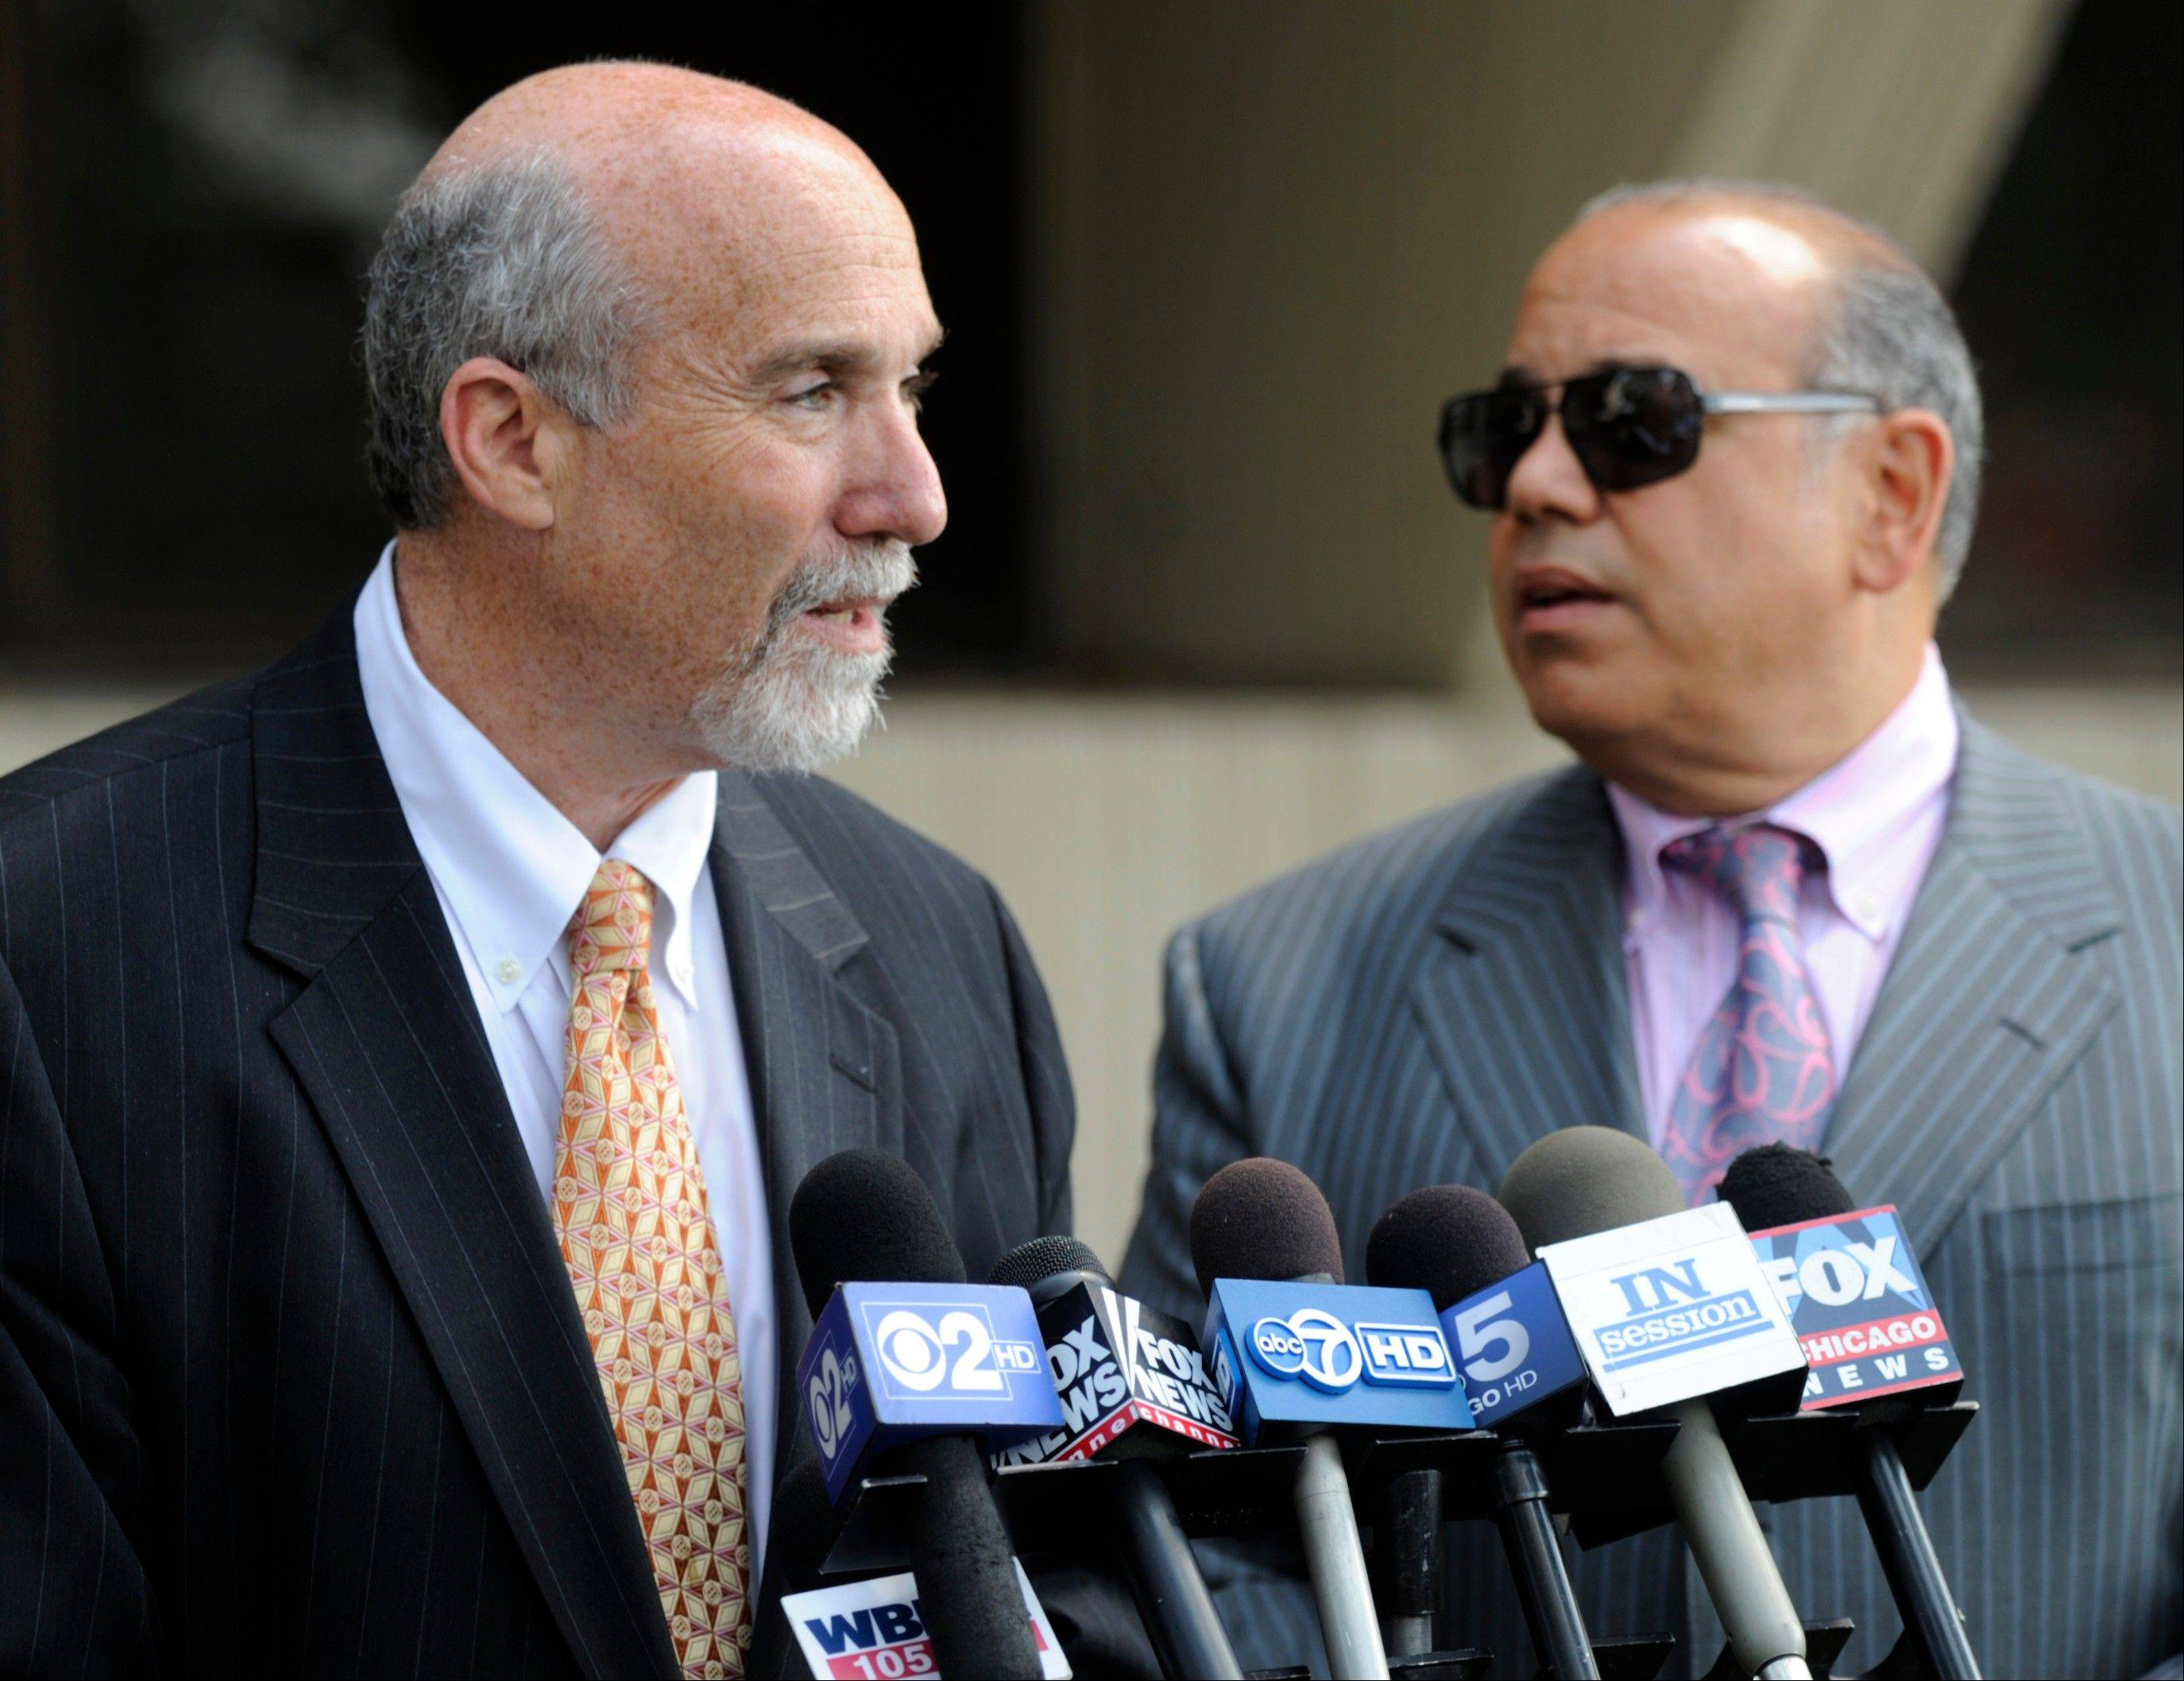 Joel Brodsky, left, and Joe Lopez, defense attorneys for former Bolingbrook police sergeant Drew Peterson, speak to the media outside the Will County courthouse in Joliet during a break in Peterson's murder trial on Monday.